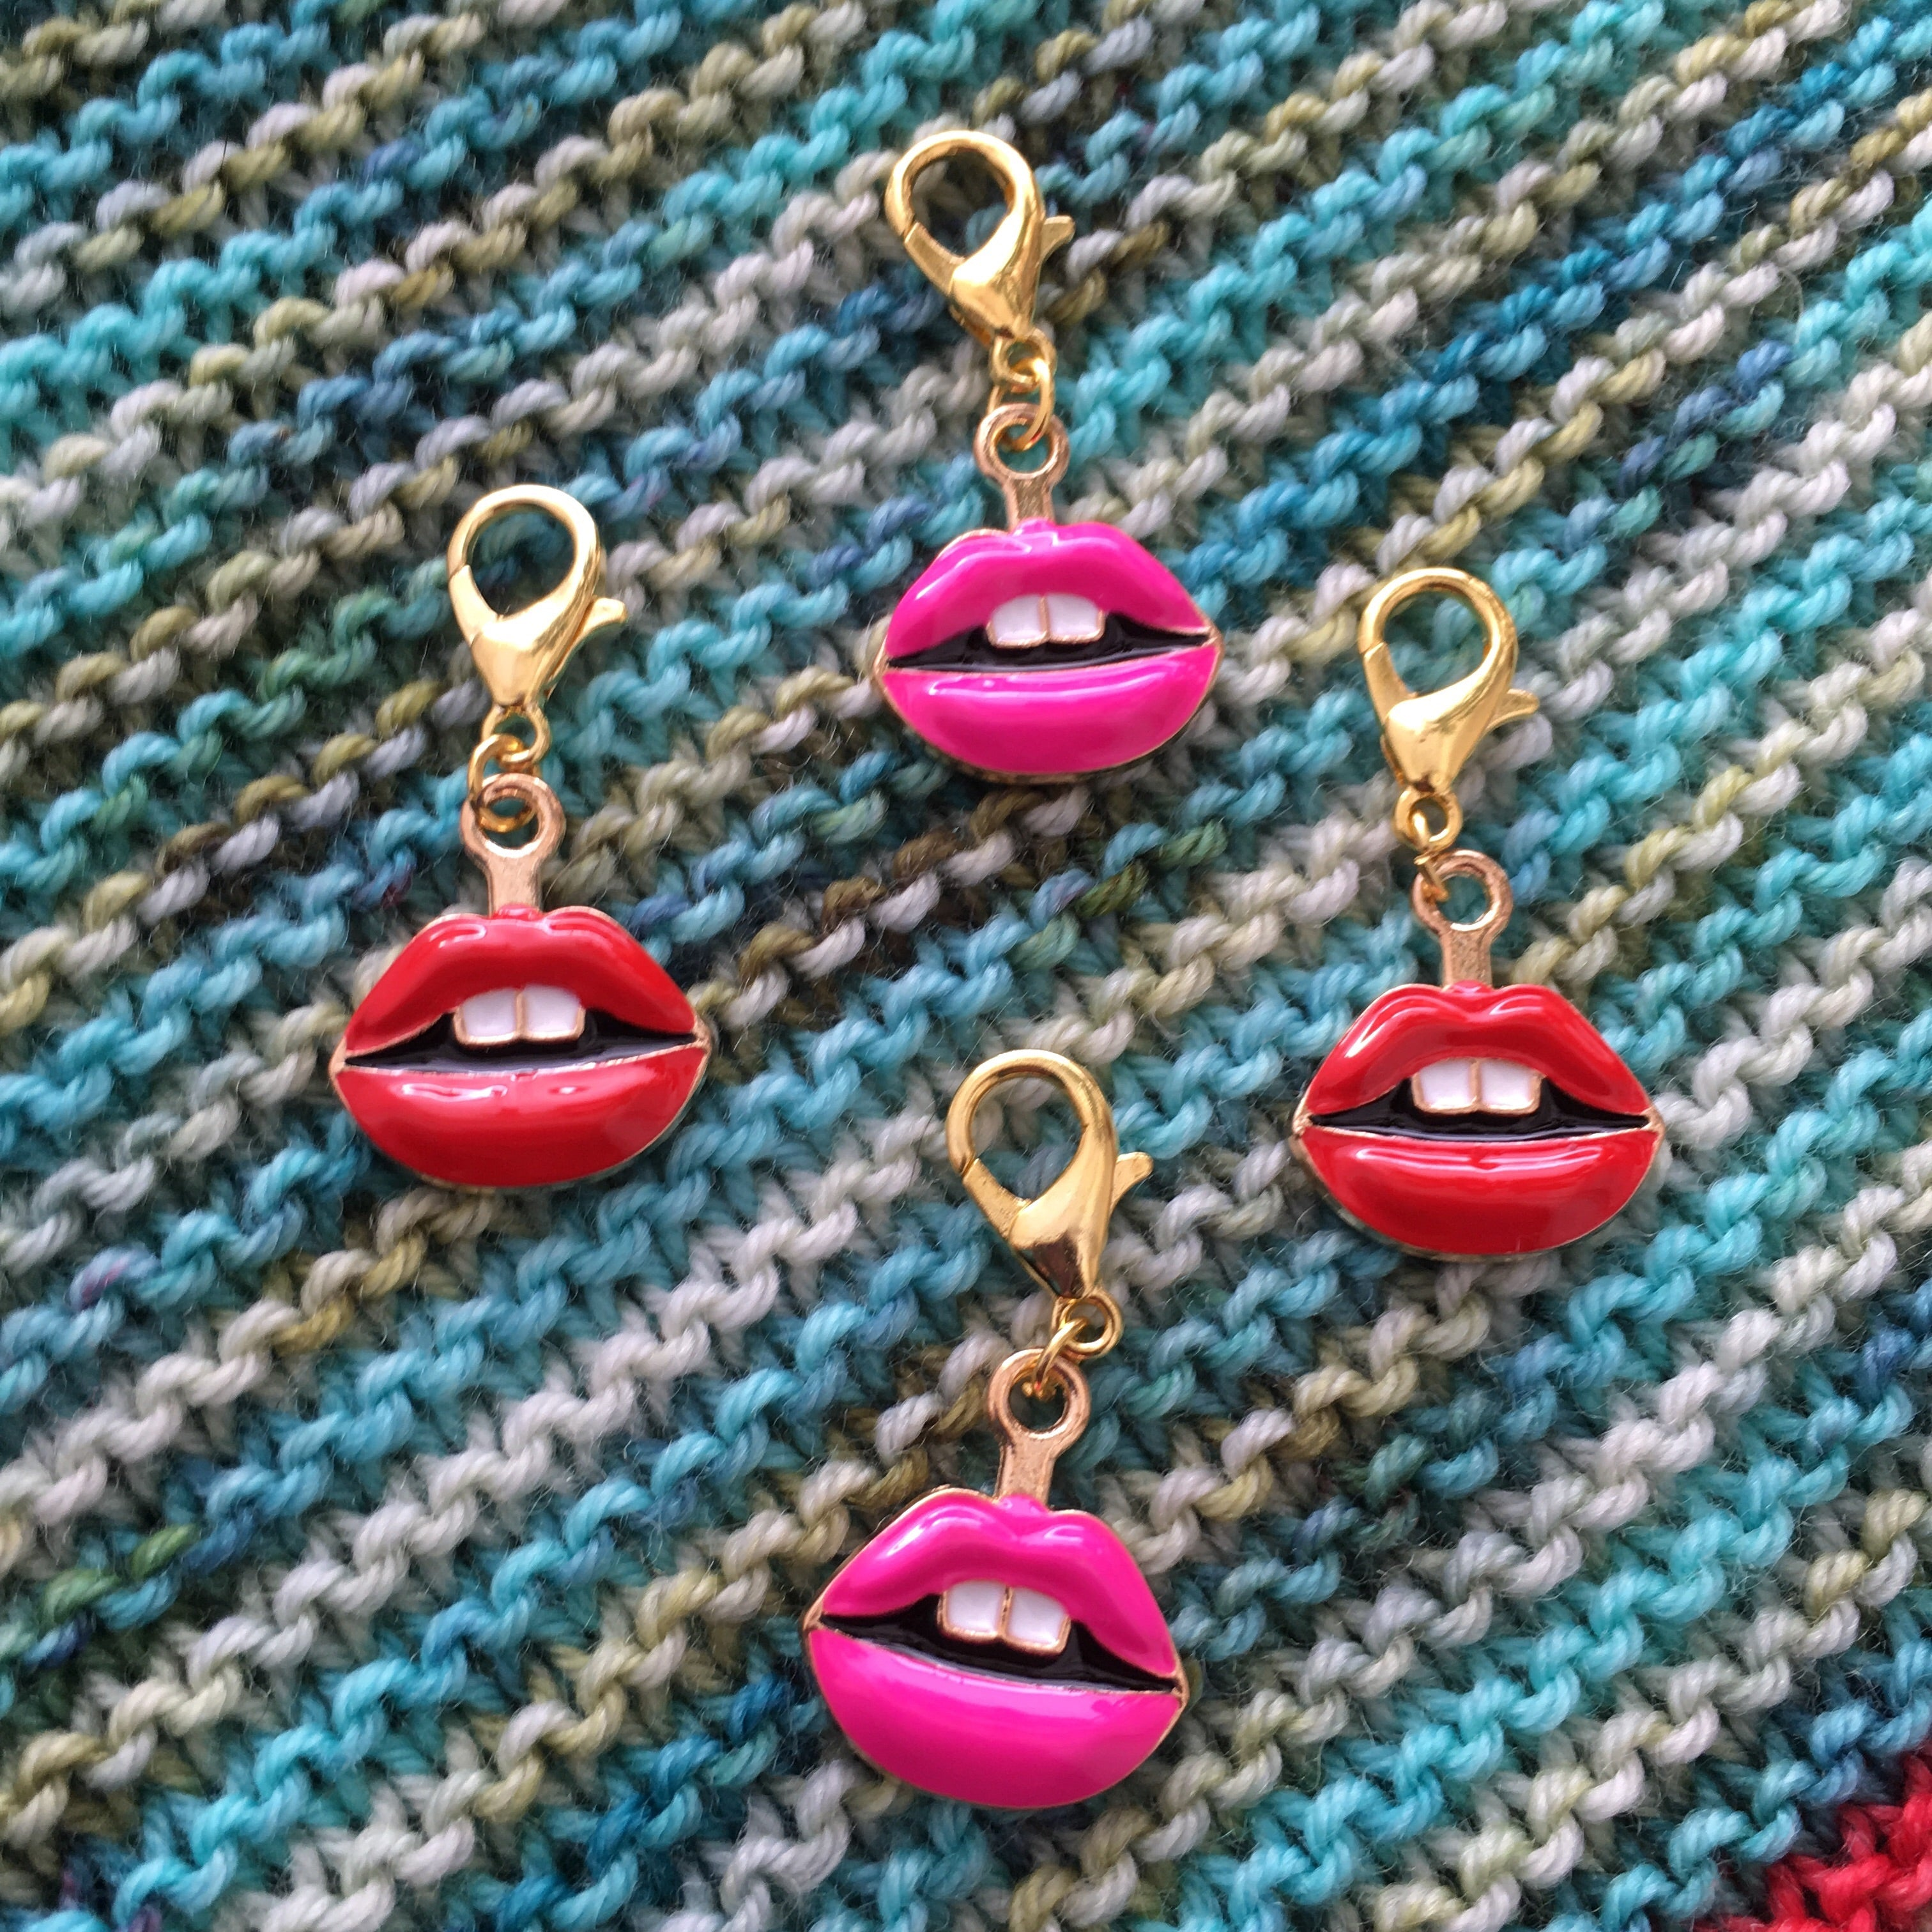 red and pink enamel lips charm on a hanging lbster clasp for knitting and crochet